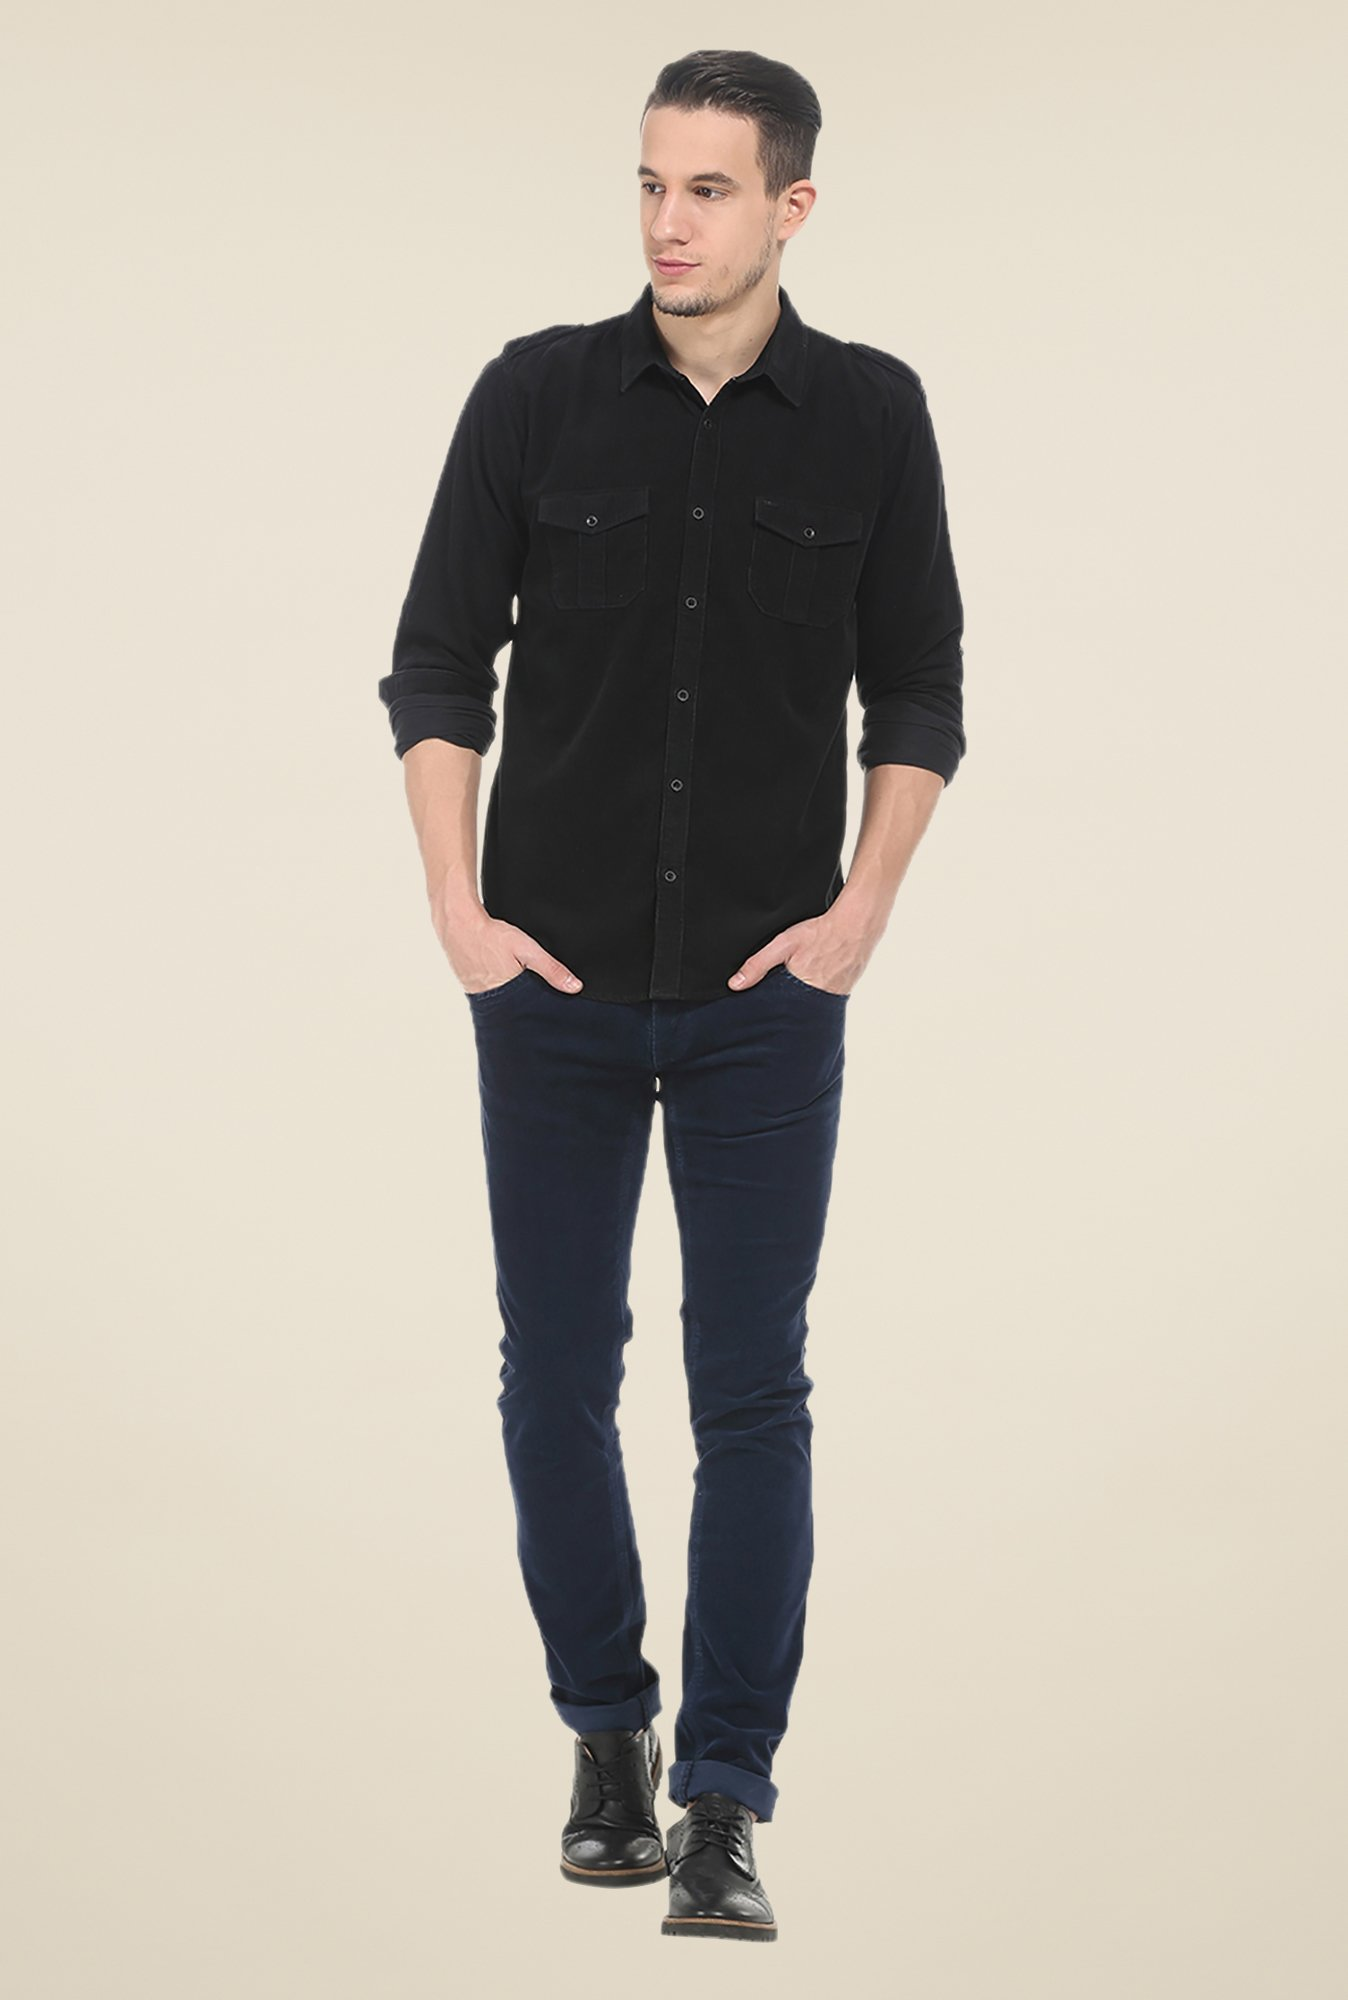 Basics Black Solid Slim Fit Cotton Shirt